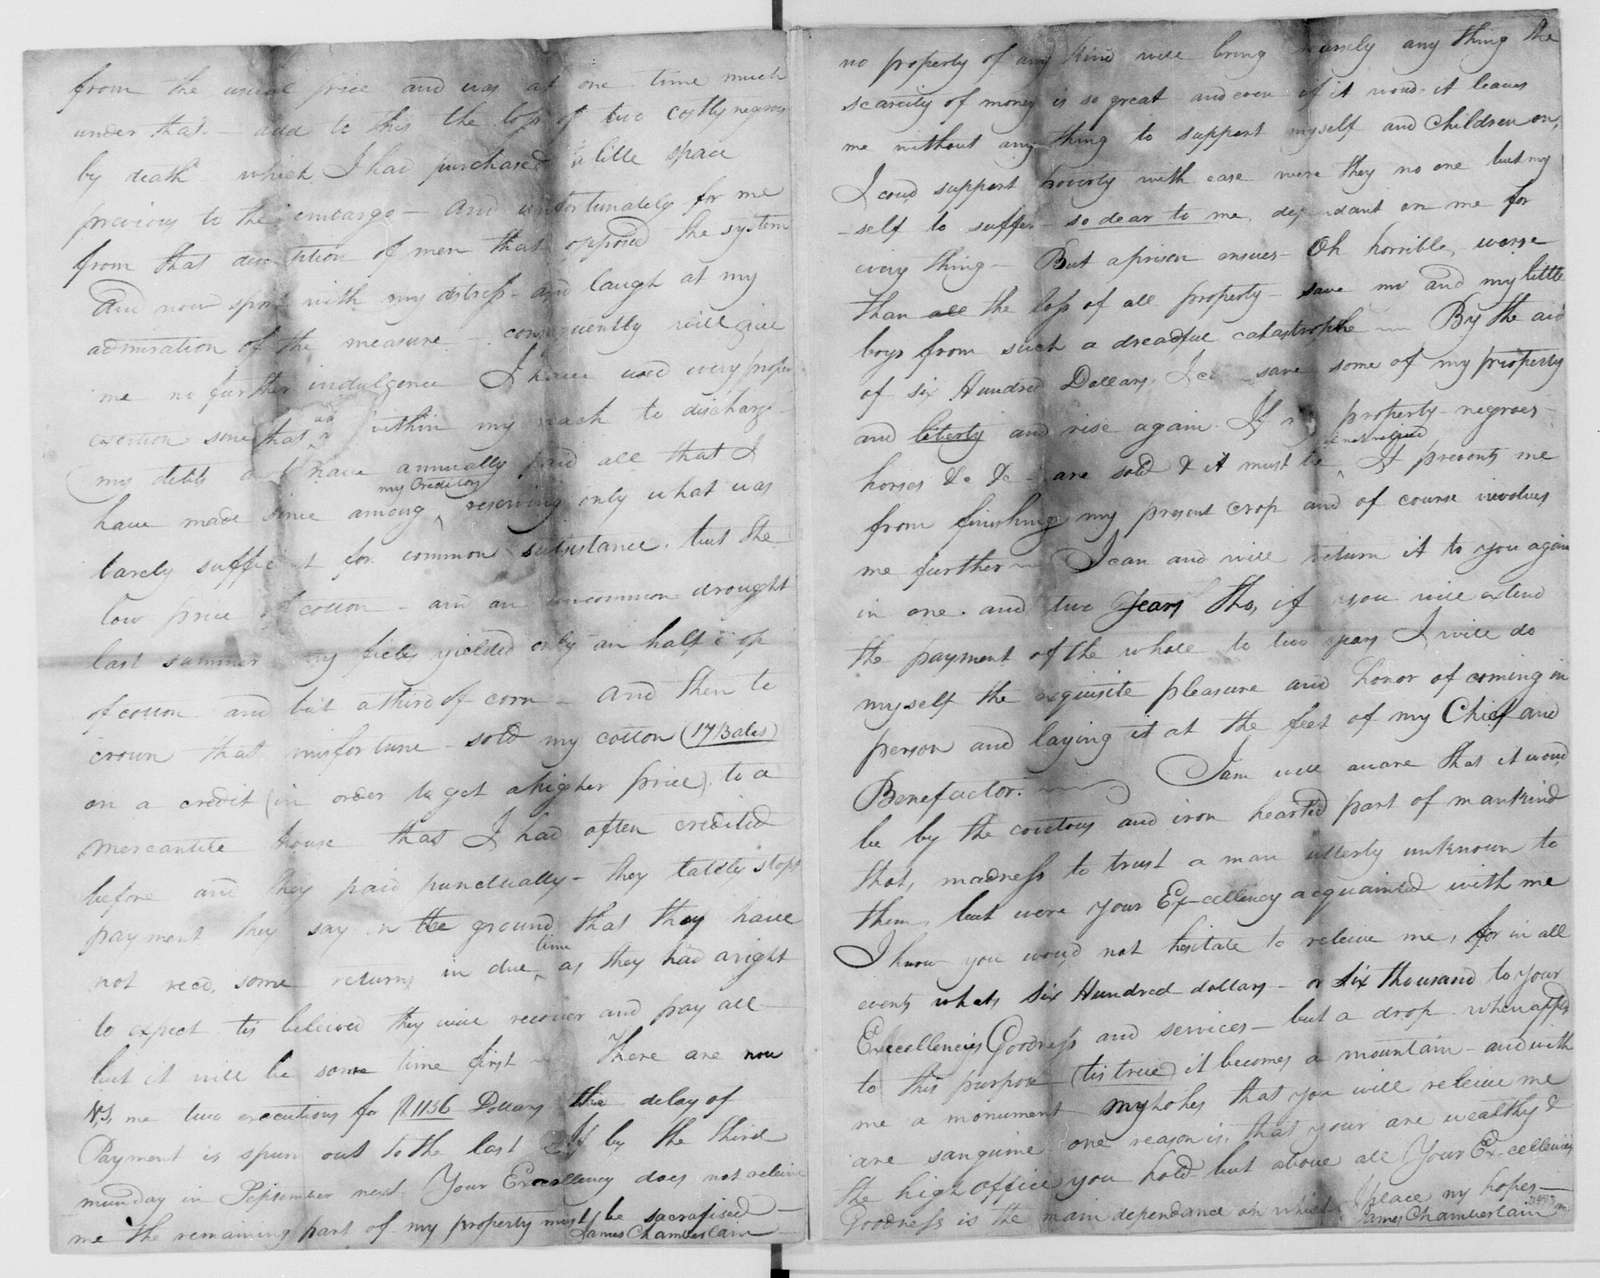 James Chamberlain to James Madison, July 4, 1811. Partly Illegible.